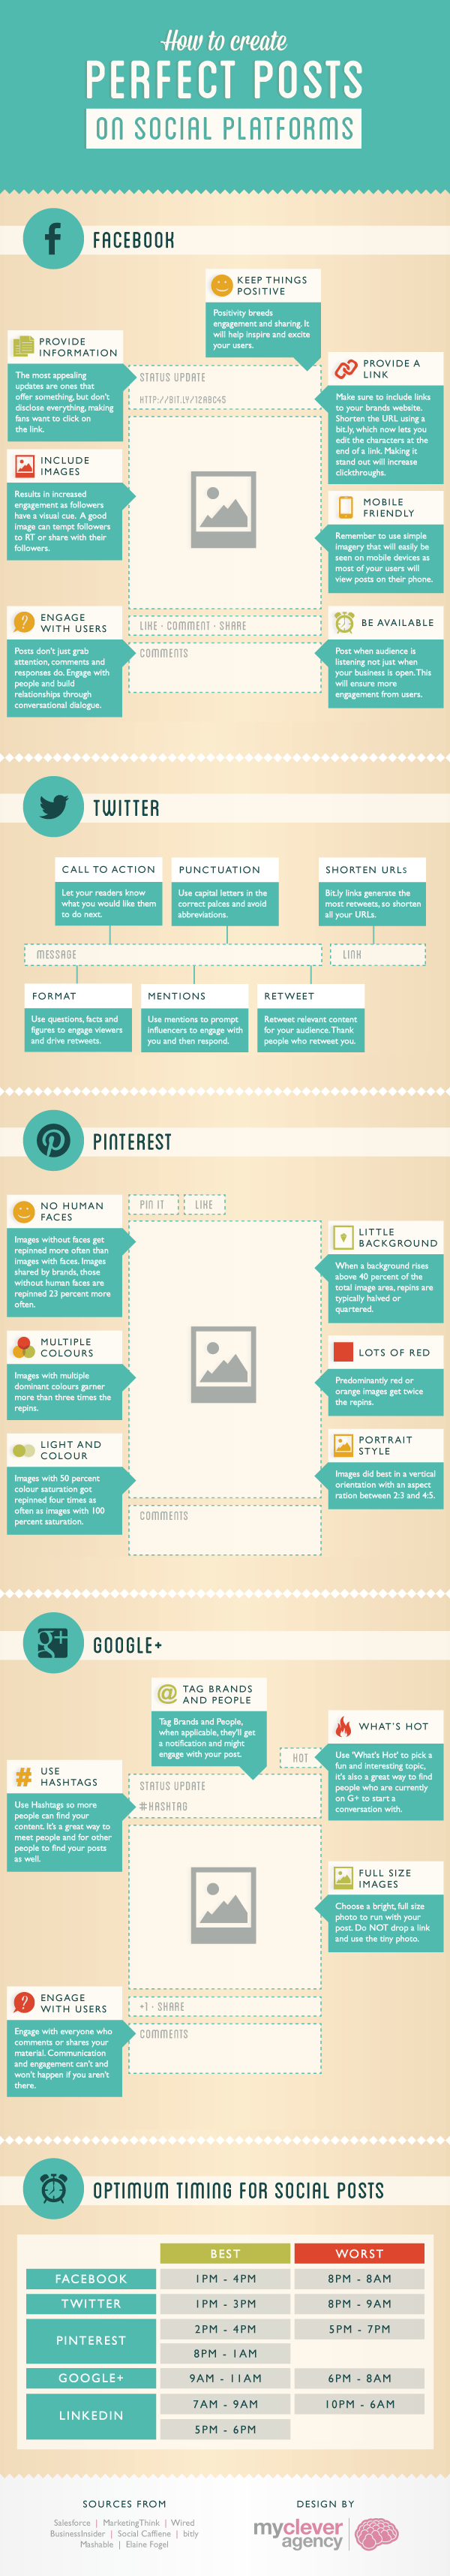 perfect post1 Create Perfect Posts on Social Platforms [Infographic]